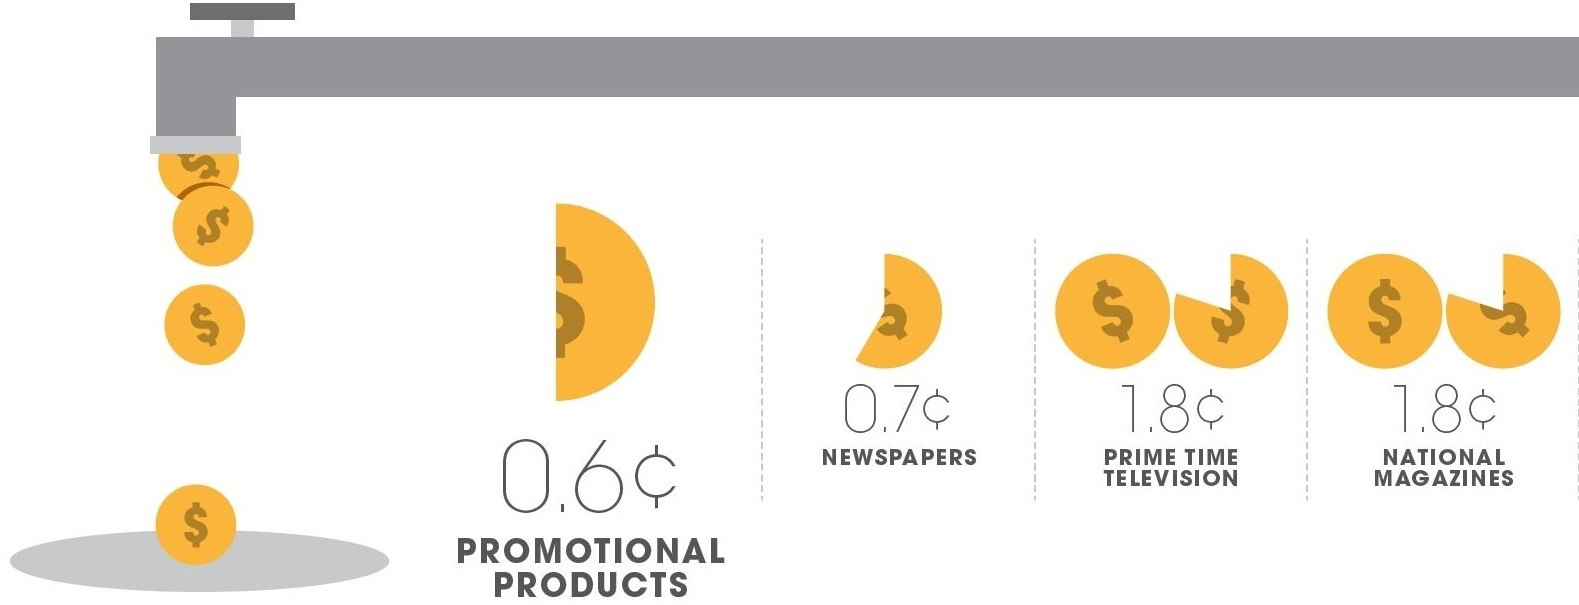 Promotional Products Cost per Impression